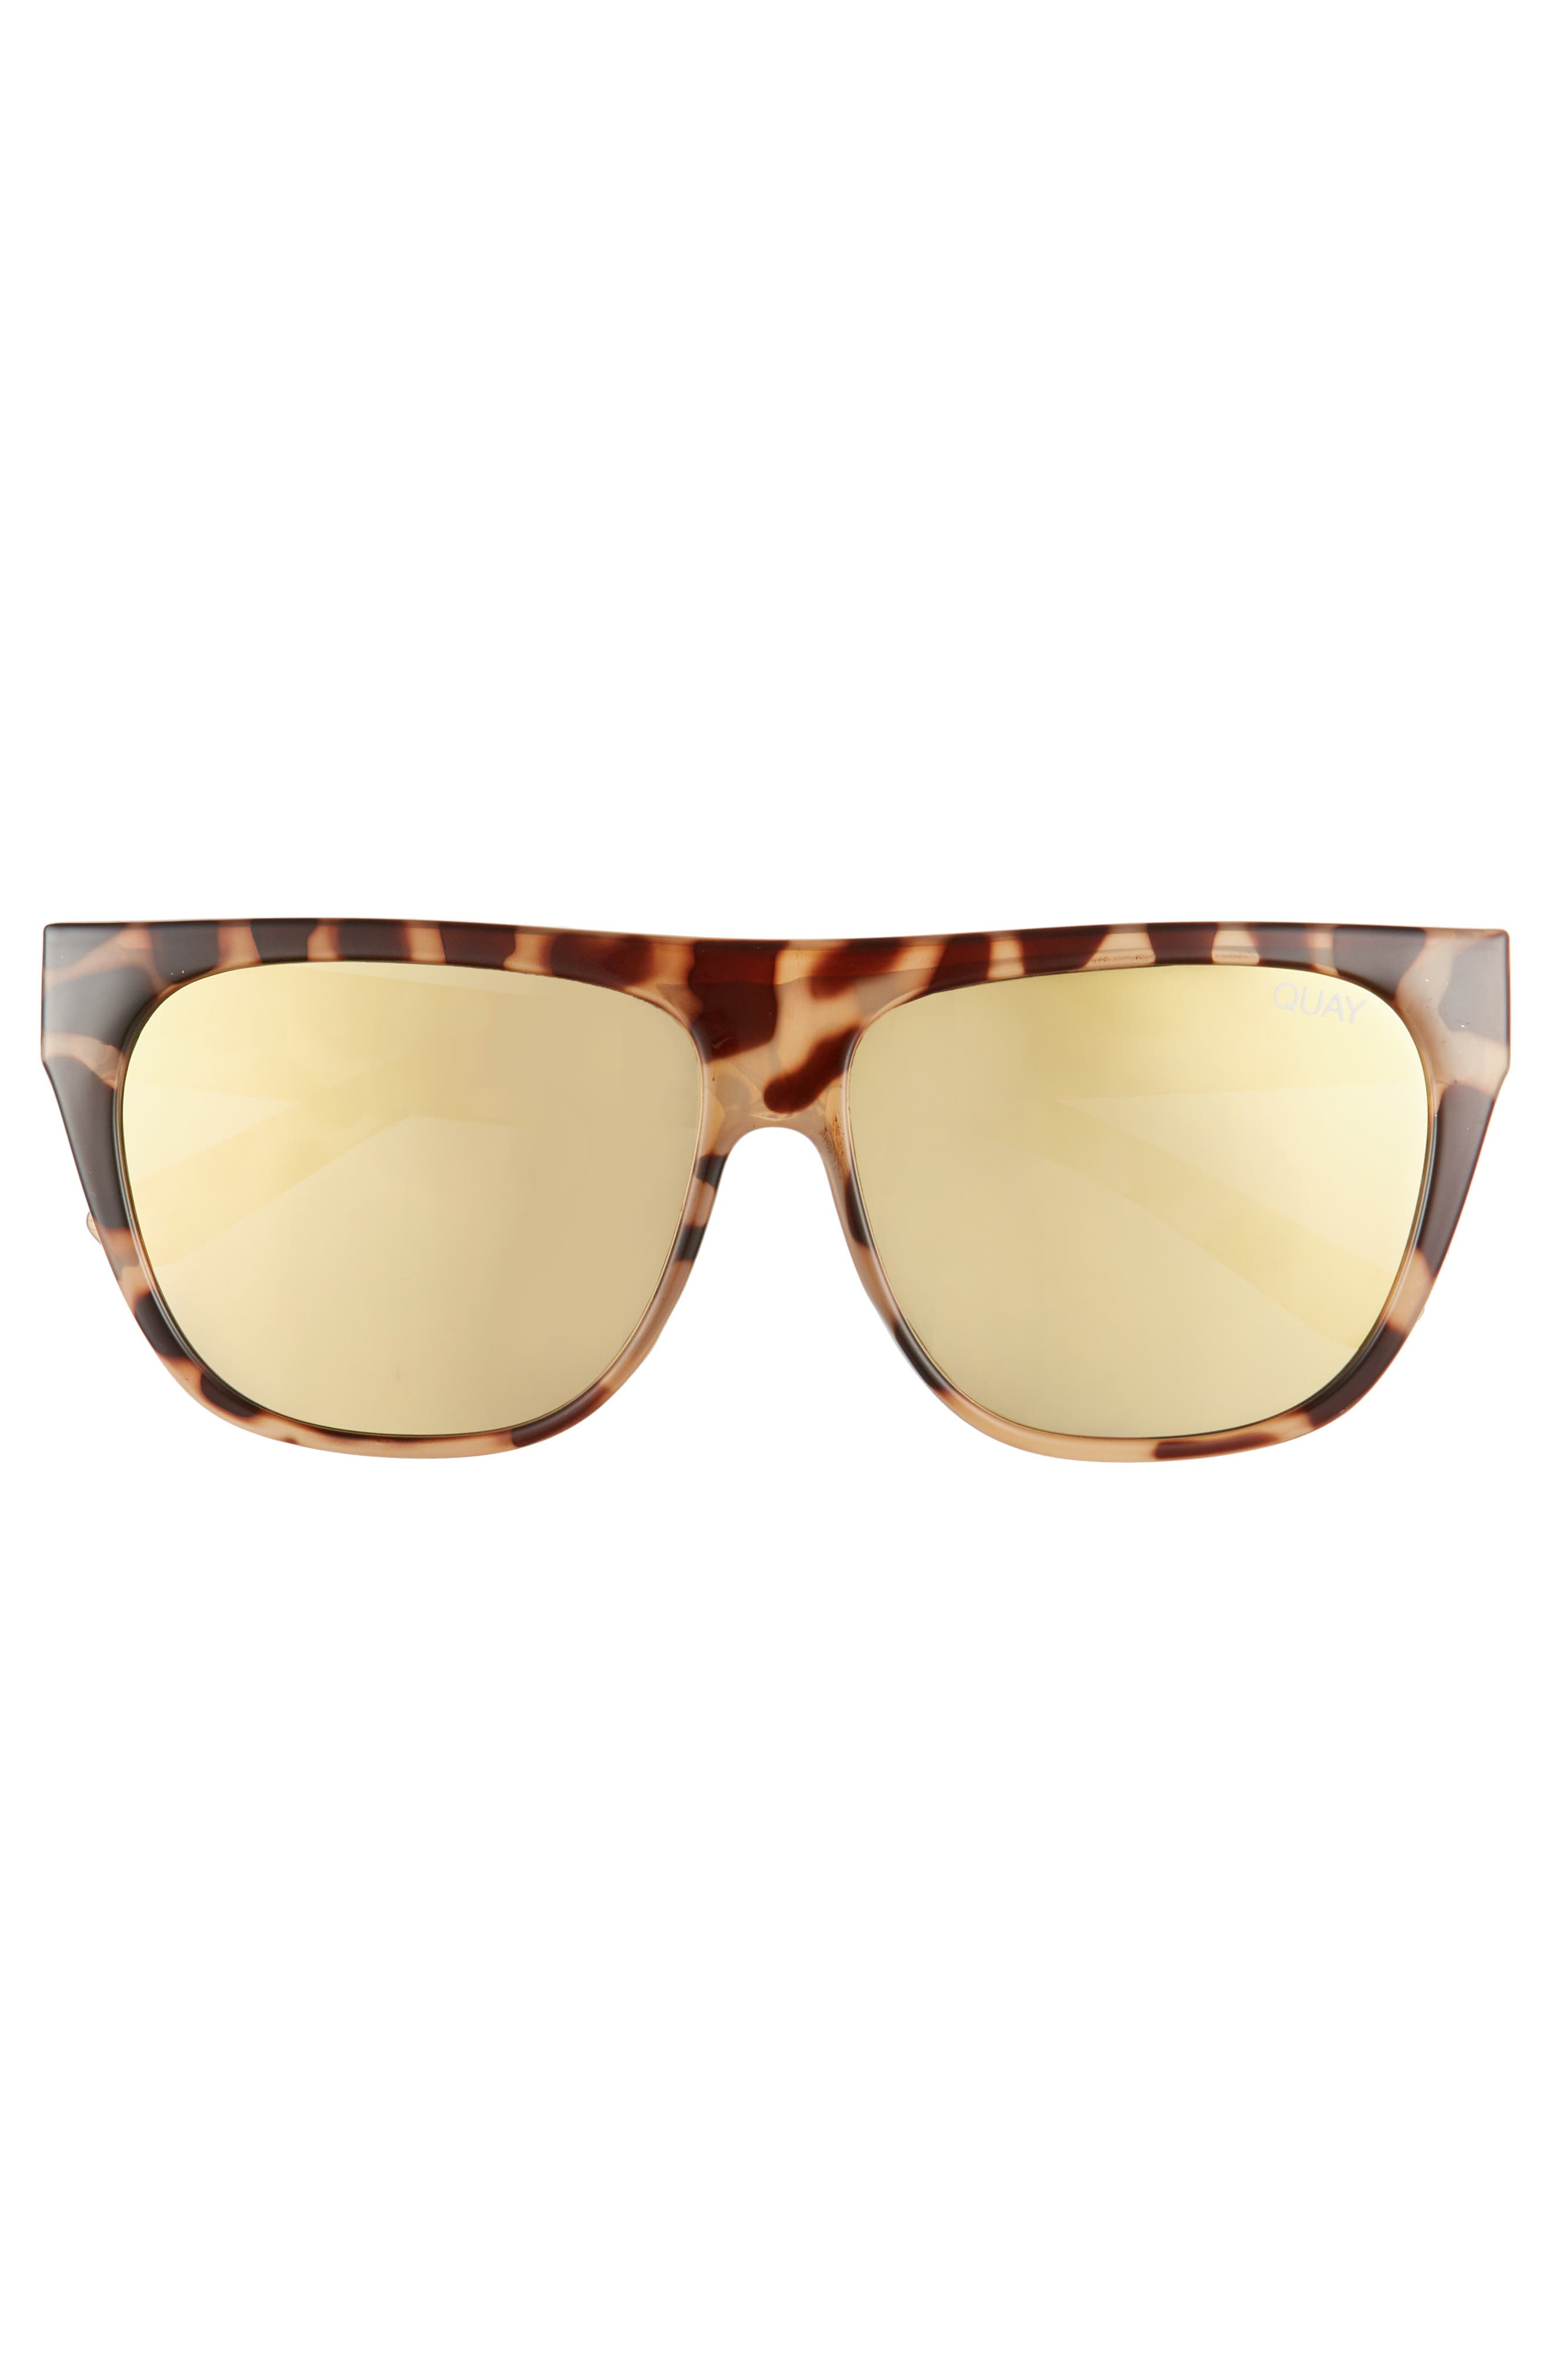 x Tony Bianco Drama by Day 55mm Square Sunglasses,                             Alternate thumbnail 3, color,                             Tort/ Gold